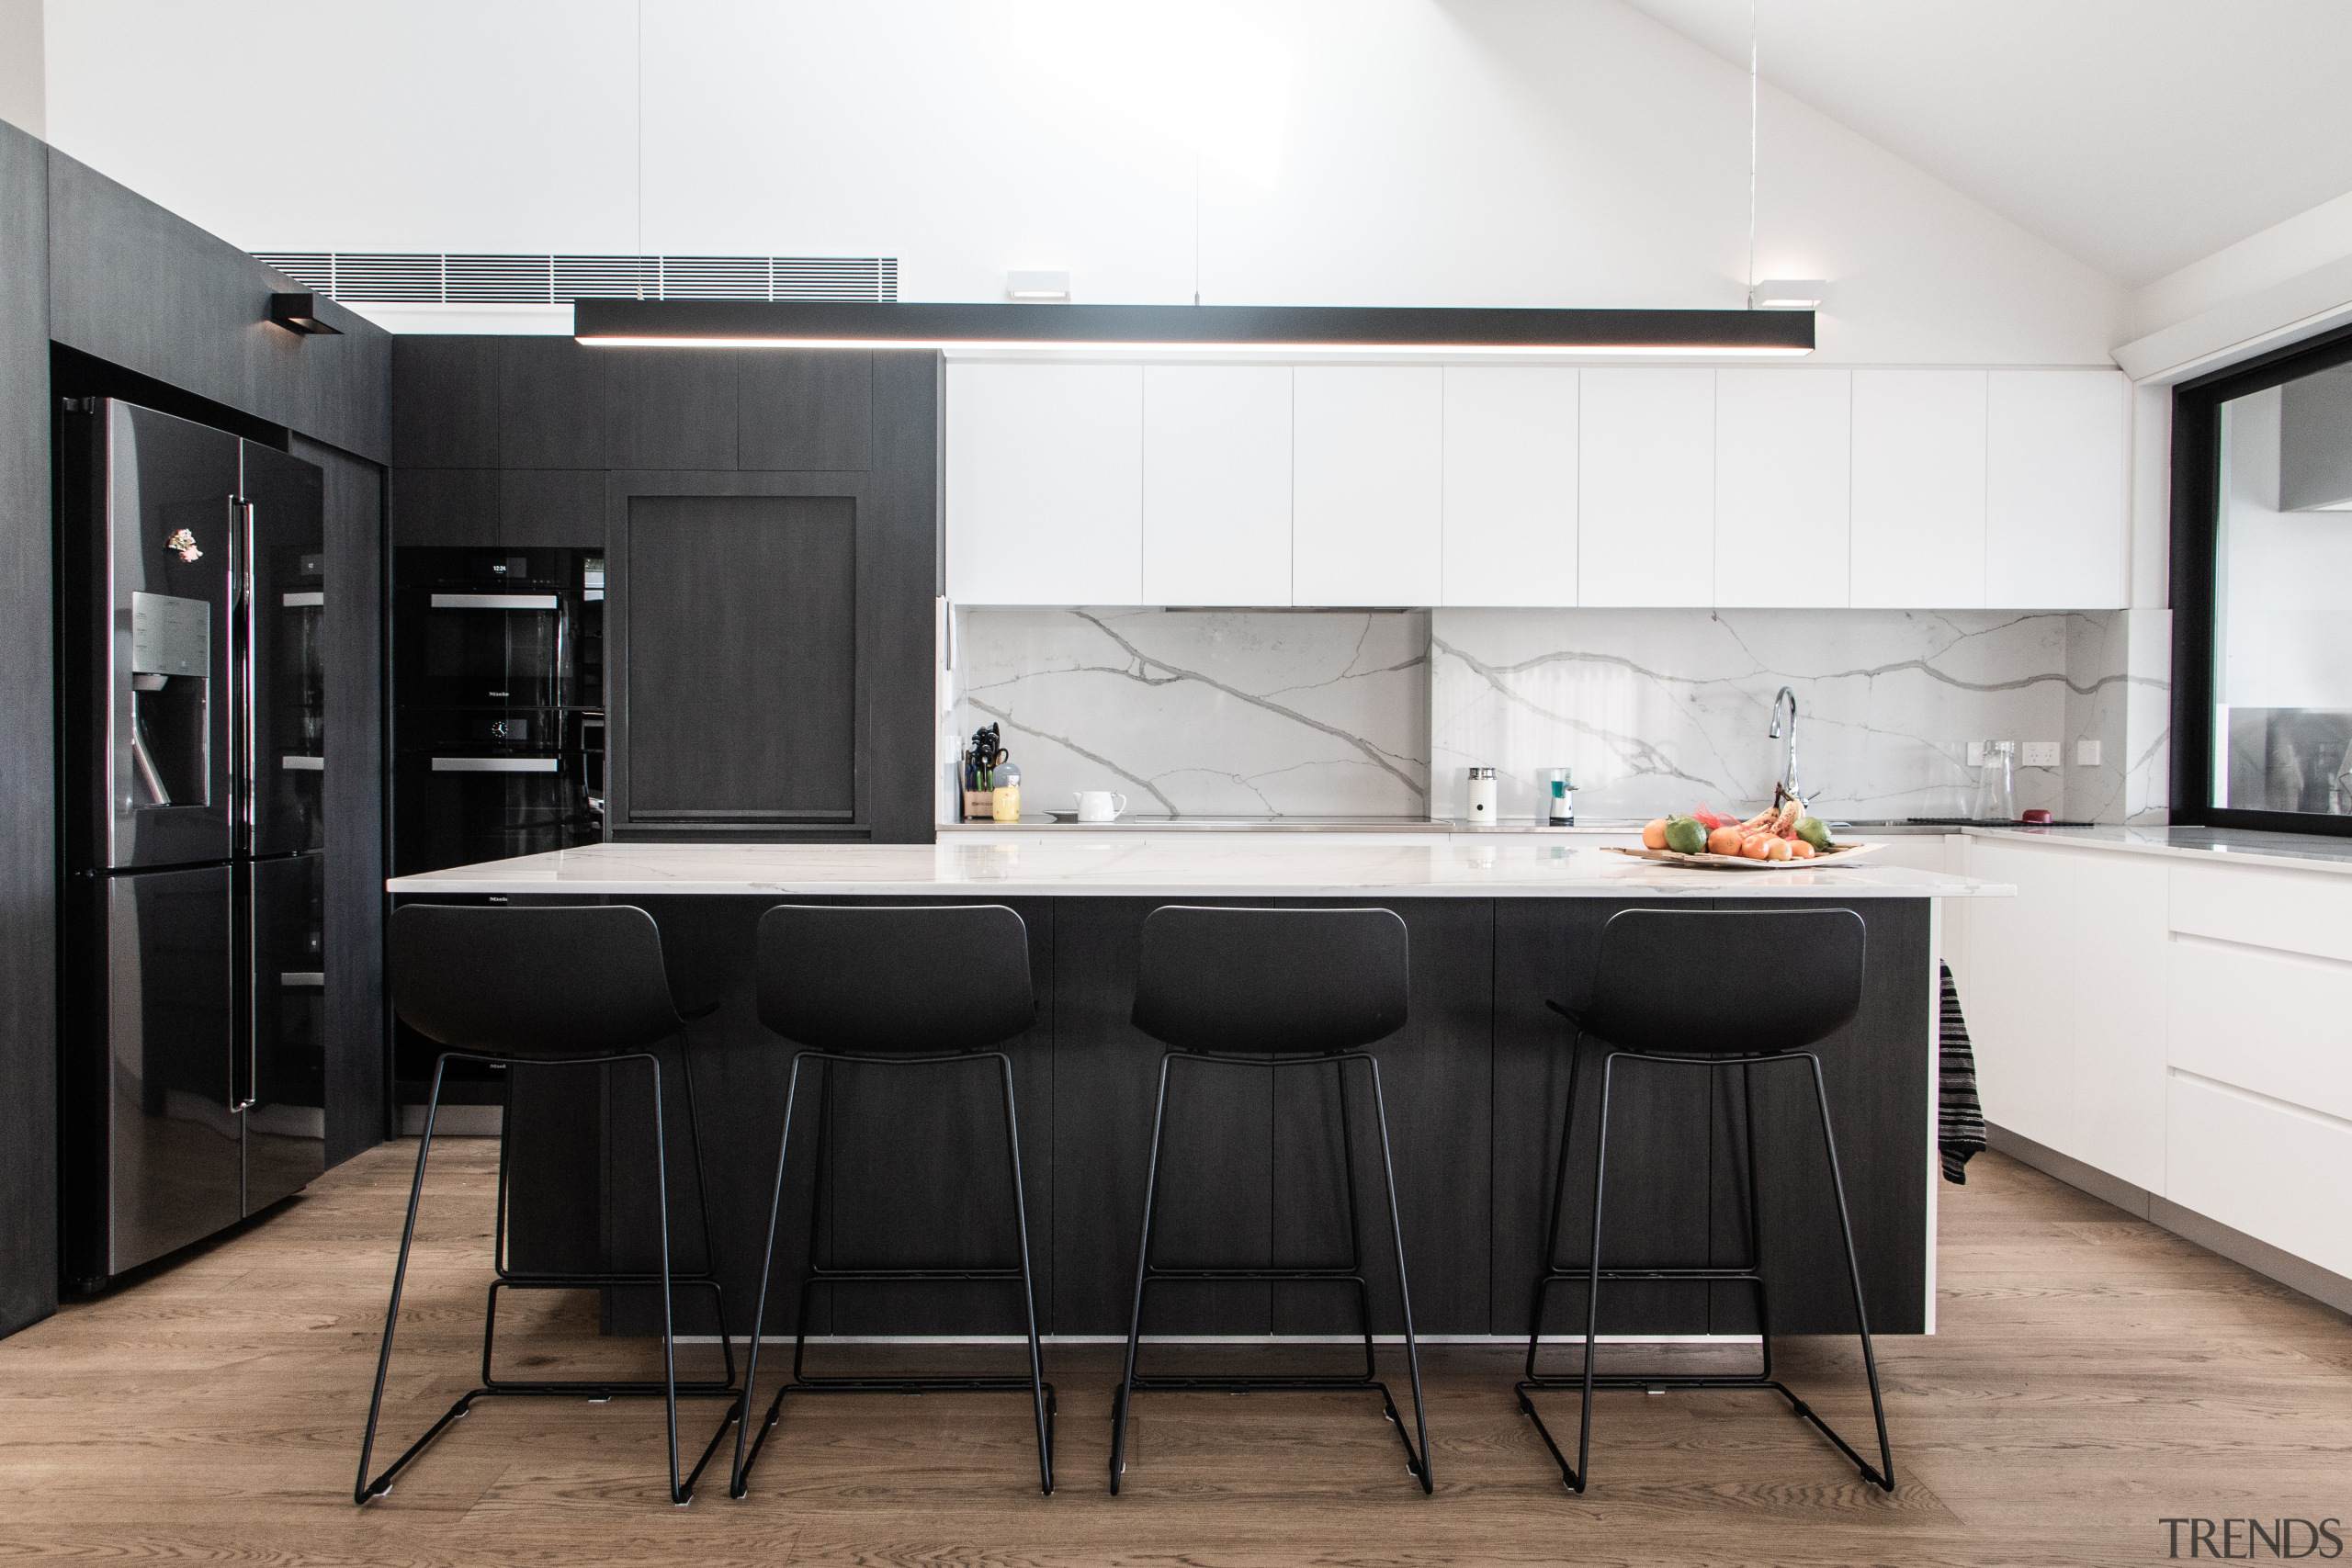 This reinvented kitchen is part of a wider white, black